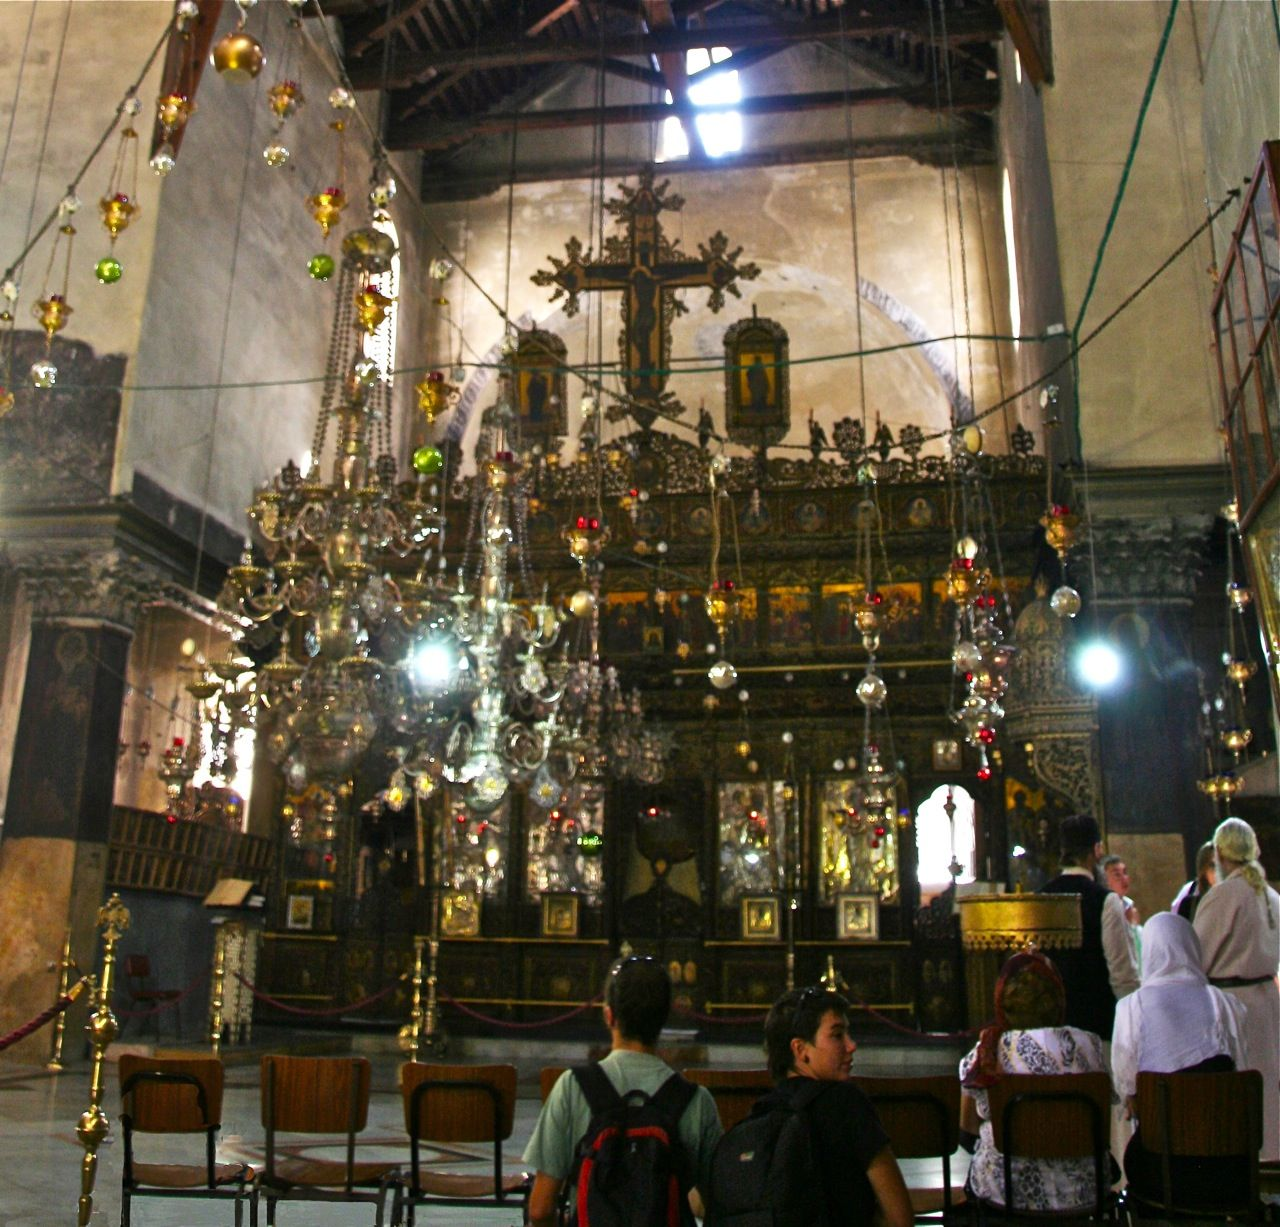 The Alter In The Church Of The Nativity Bethlehem Palestinian Territories Sits Atop The Grotto Of The Nativity B Nativity Church Birthplace Of Jesus Shrine